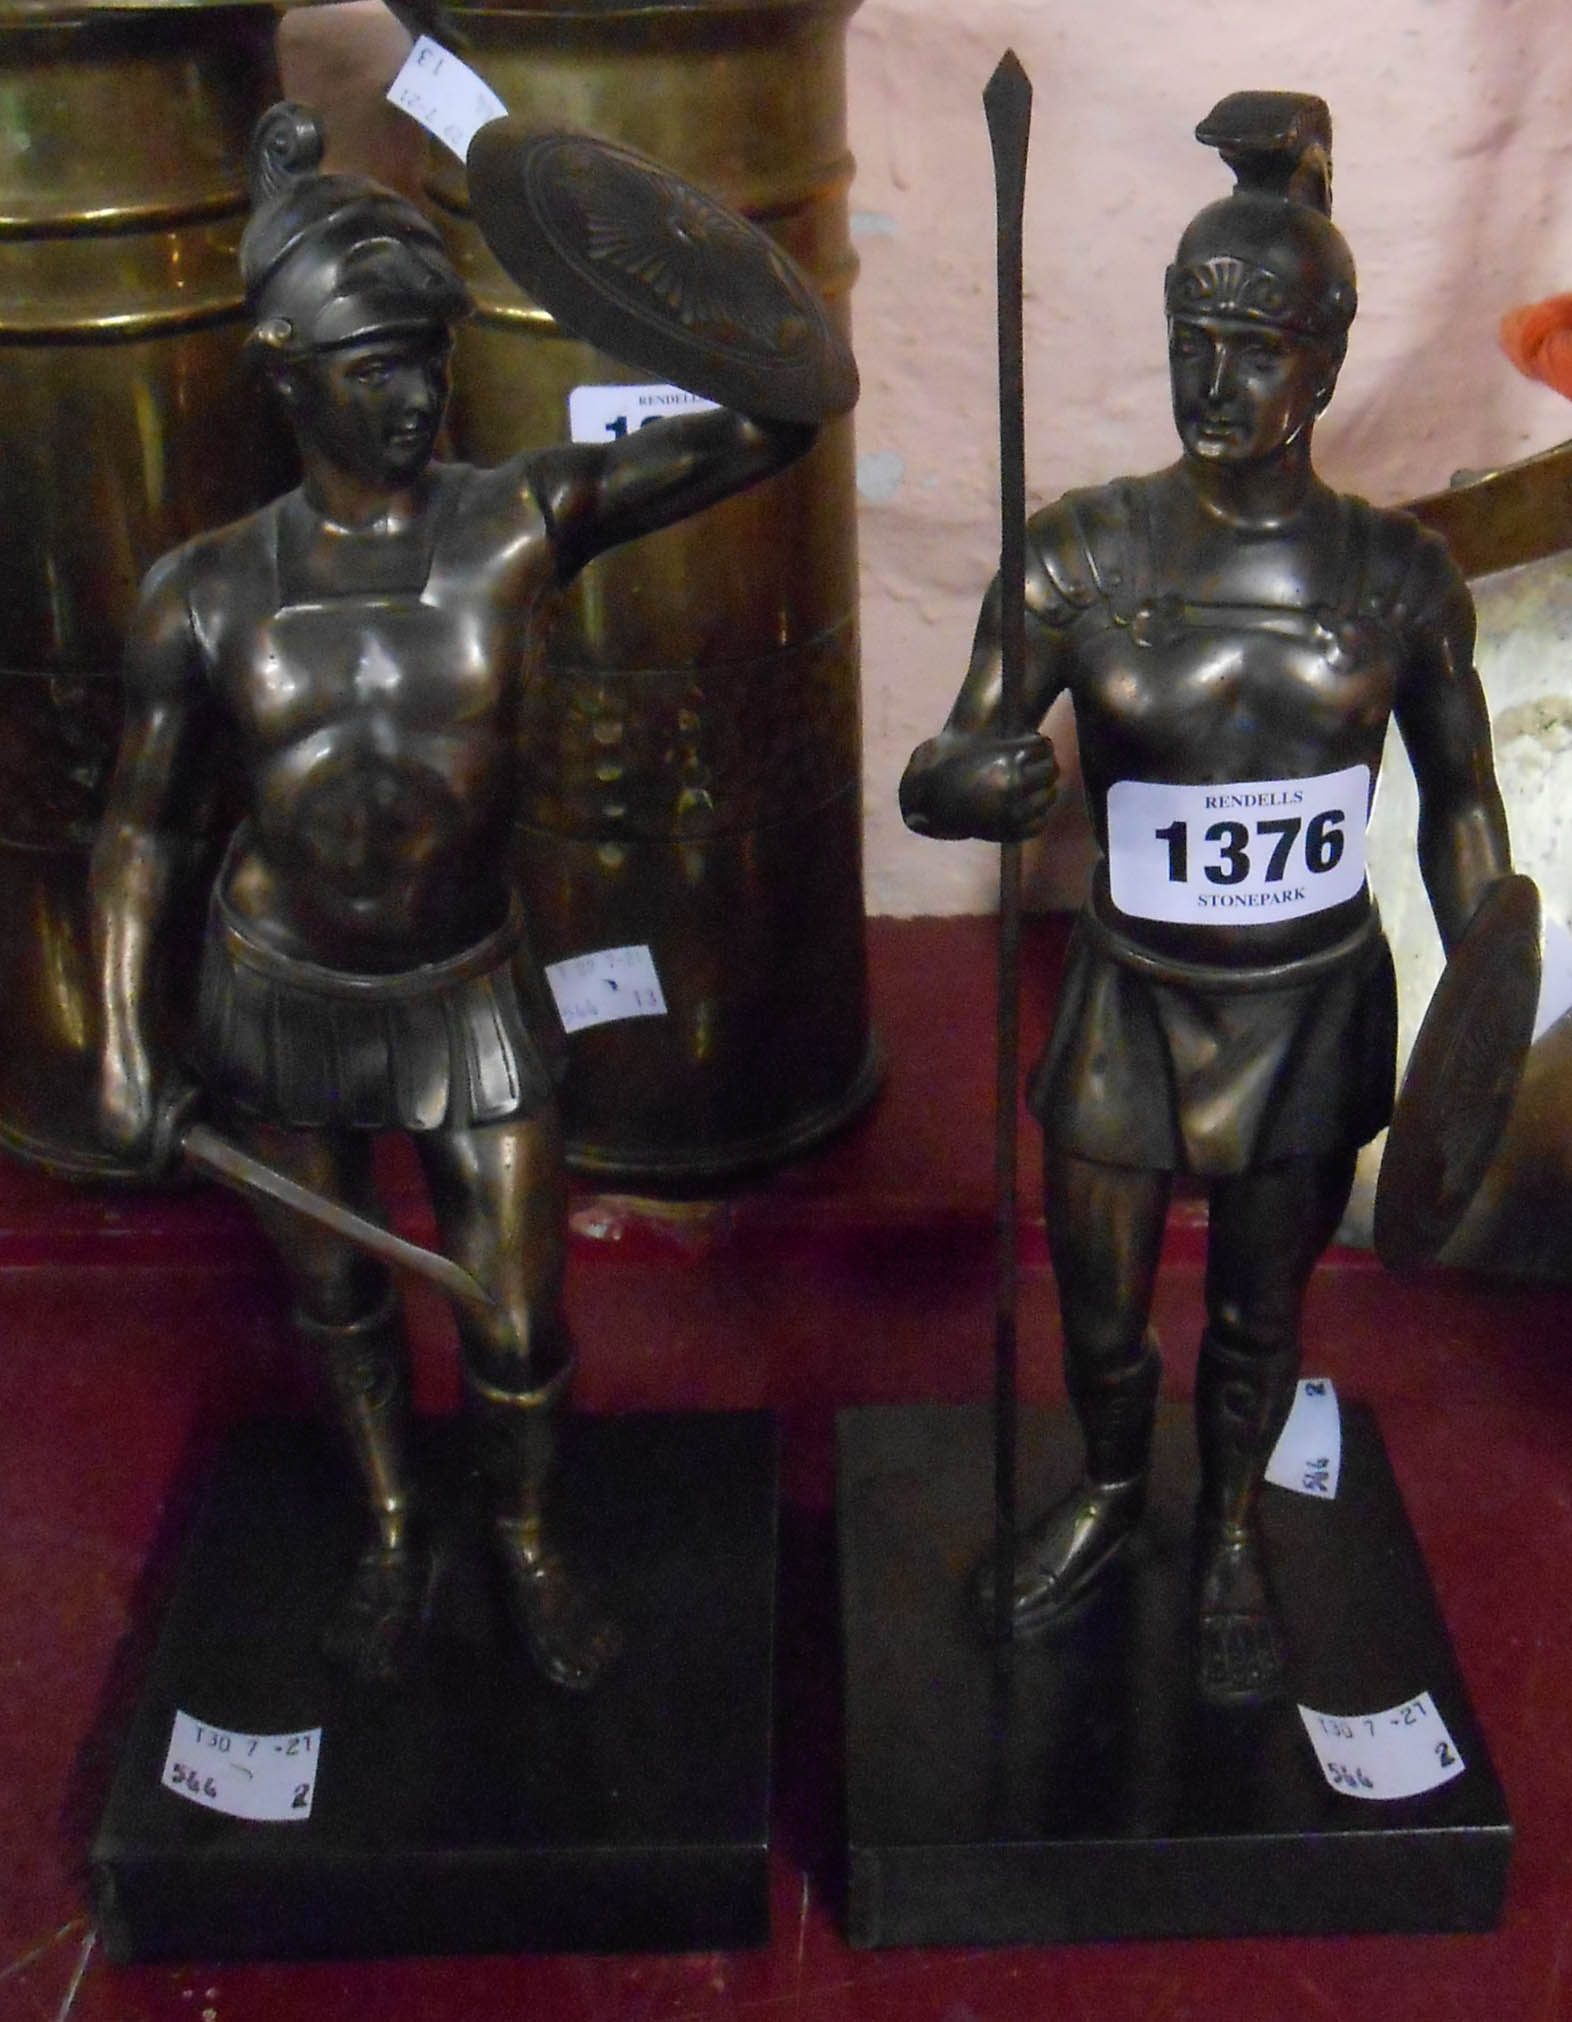 A pair of cast metal statues depicting Roman soldiers with bronzed finish